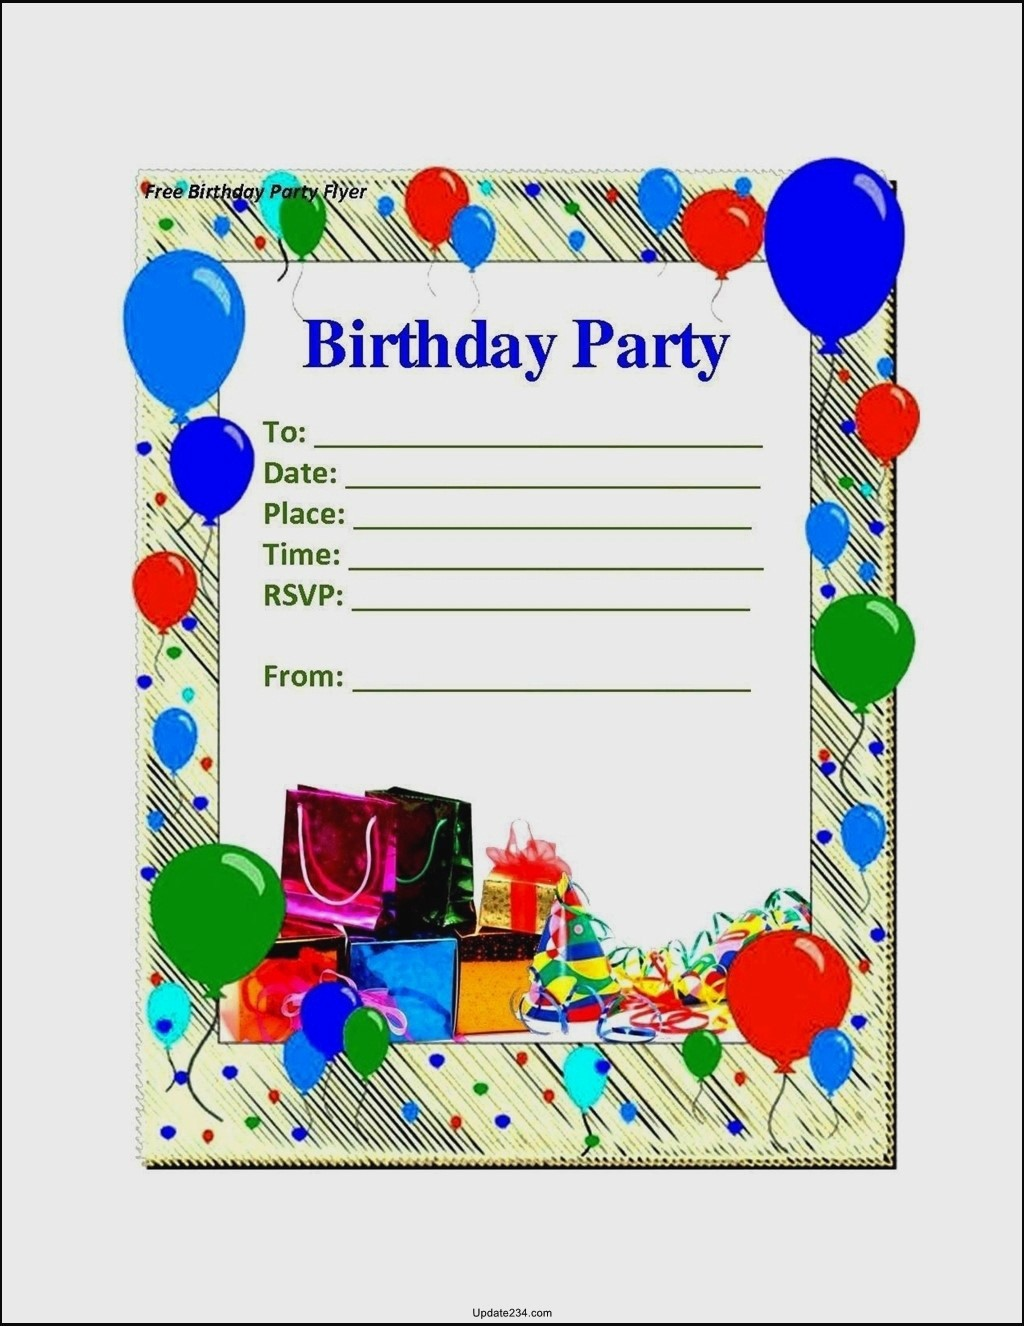 Birthday Card Template for Word Lovely Blank Birthday Card Template Word Template Update234